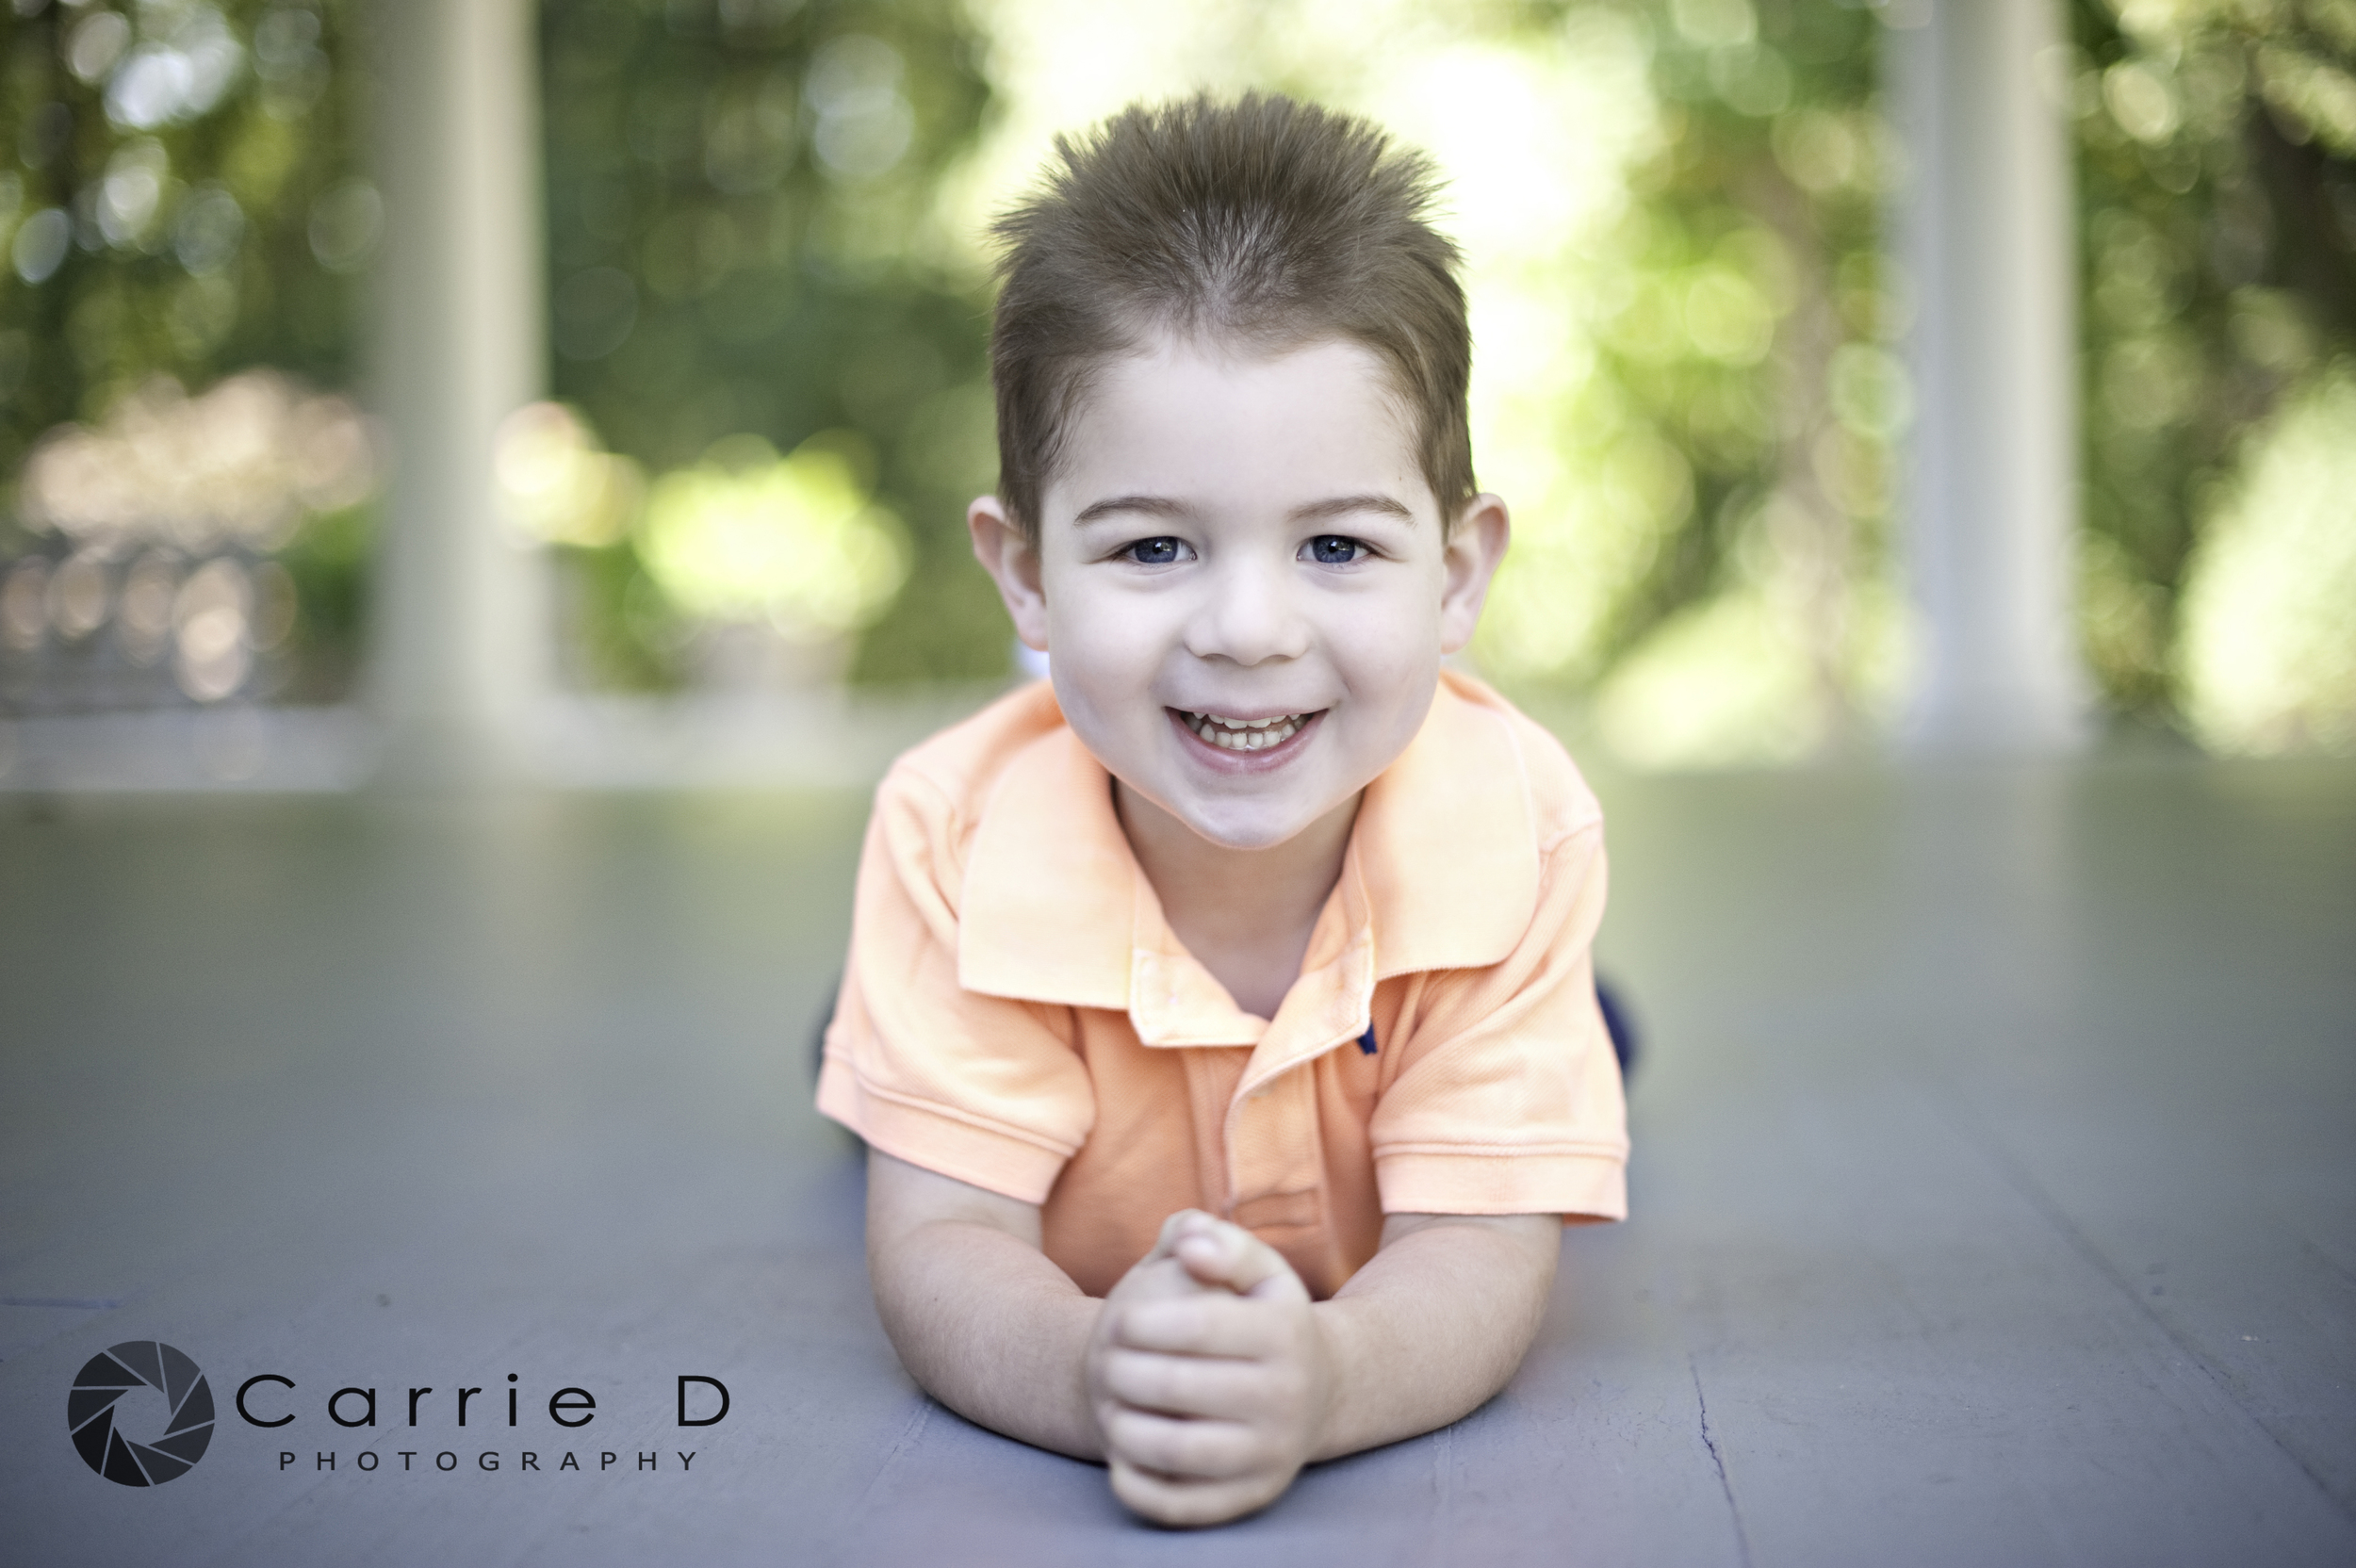 Harford County Photographer – Harford County Portrait Photographer – Harford County Family Photographer – Harford County Child Photographer – Harford County Sibling Photographer – Harford County Natural Light Photographer – Harford County Lifestyle Photographer – Harford County Natural Light Portrait Photographer - Maryland Photographer – Maryland Portrait Photographer – Maryland Family Photographer – Maryland Child Photographer – Maryland Sibling Photographer – Maryland Natural Light Photographer – Maryland Lifestyle Photographer – Maryland Natural Light Portrait Photographer - Abby_DSC_0655B